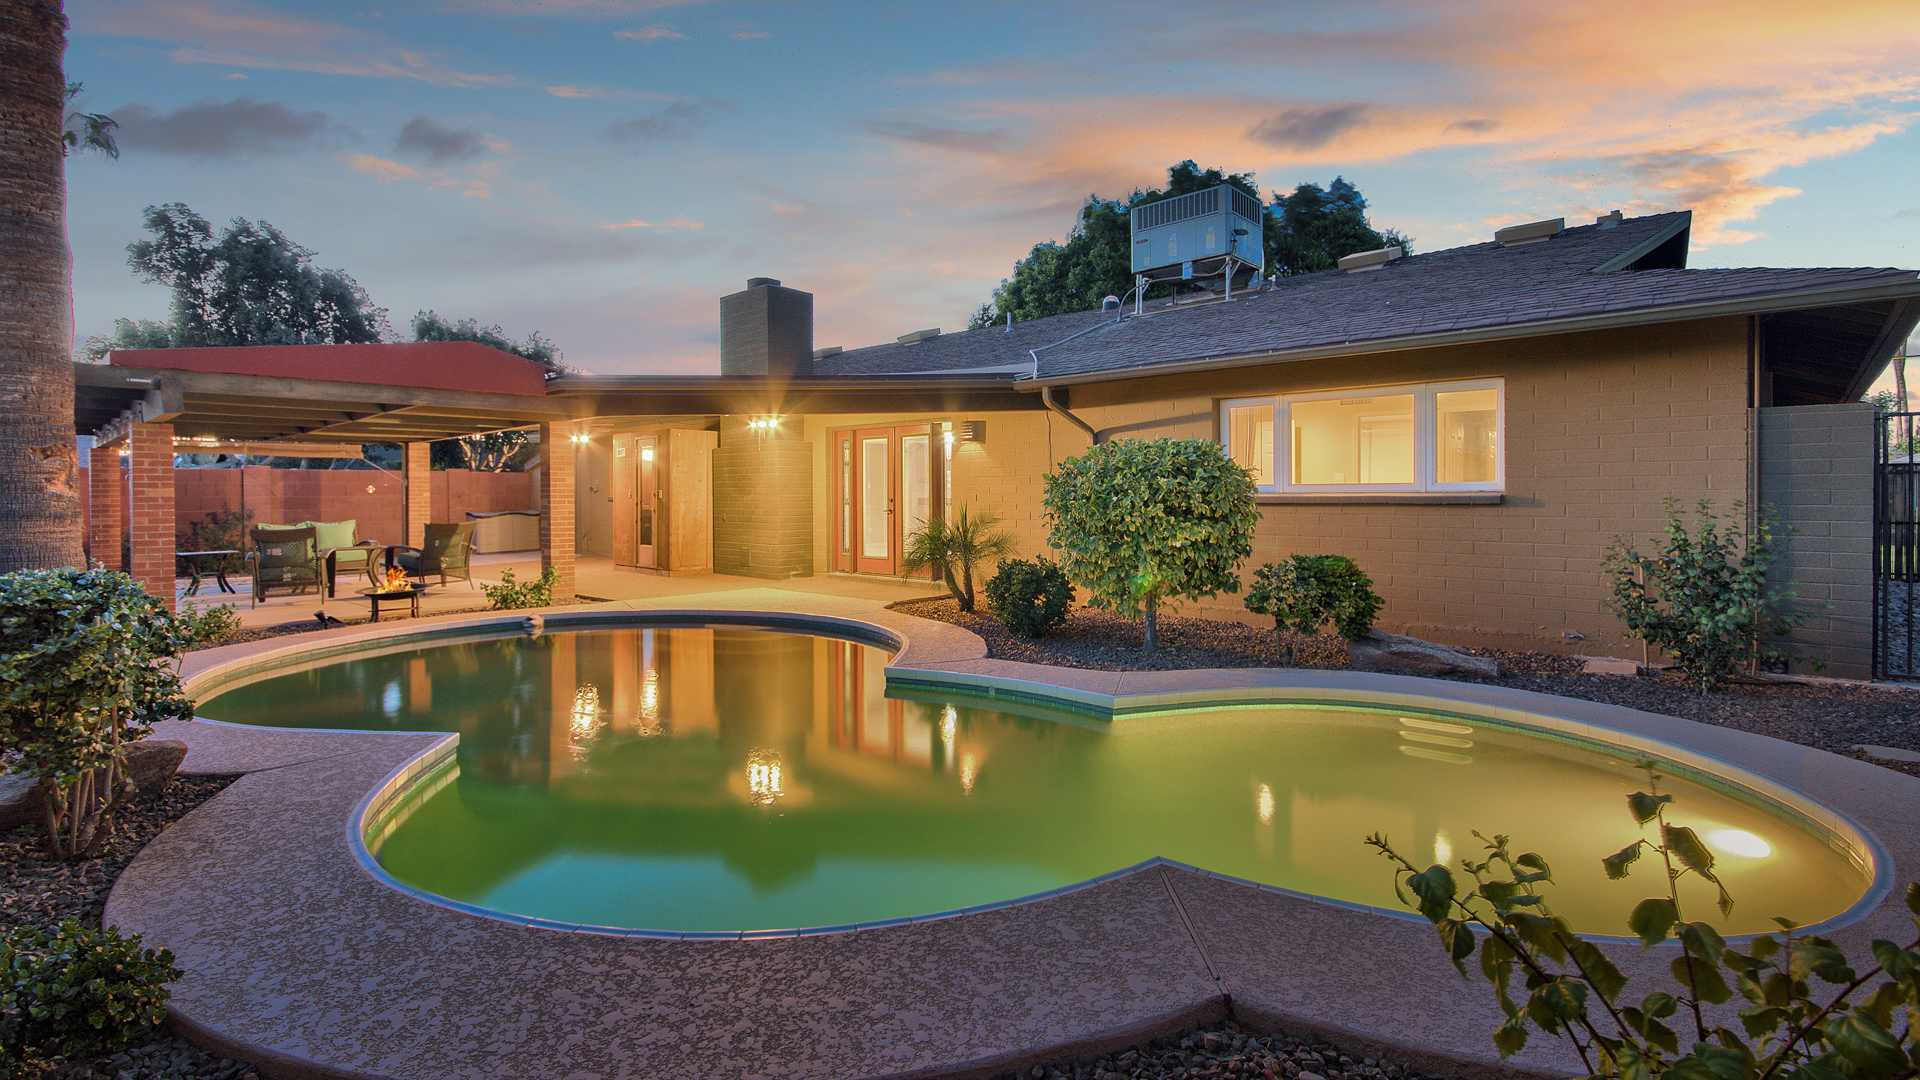 Sold – Tempe – Gorgeous Pool Home – Hardscape fireplace in private front Courtyard